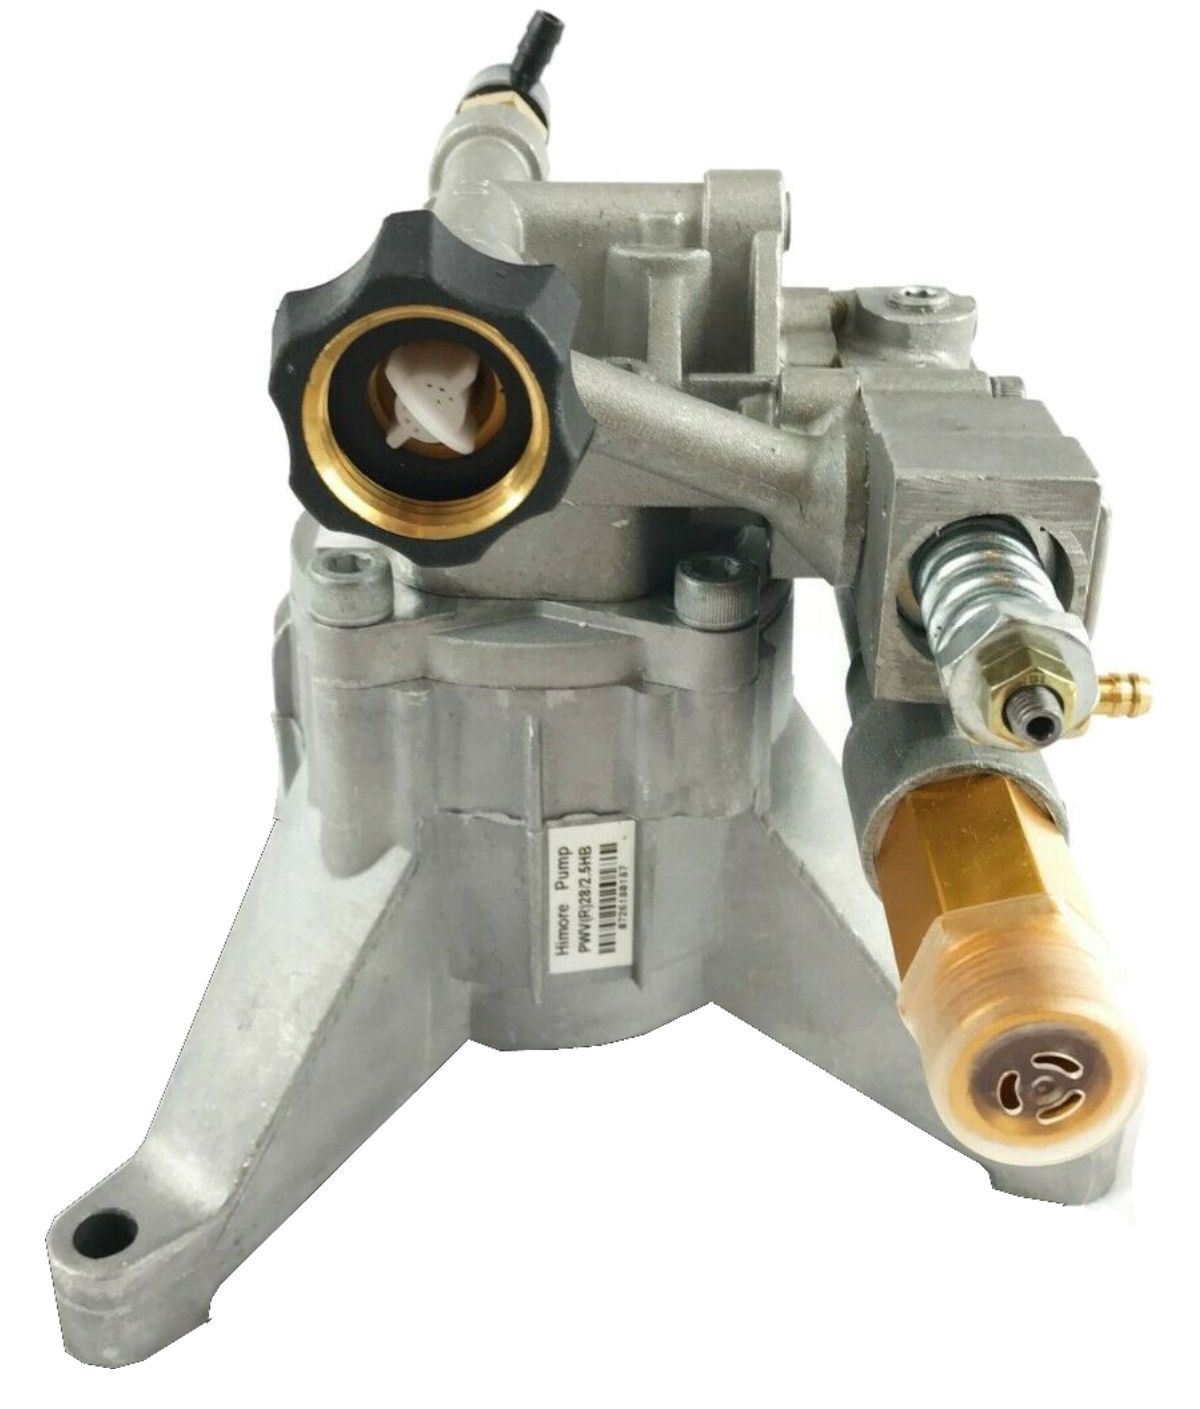 2700 PSI PRESSURE WASHER WATER PUMP Brute 020291-2 020291-3 020291-4 - AE-Power